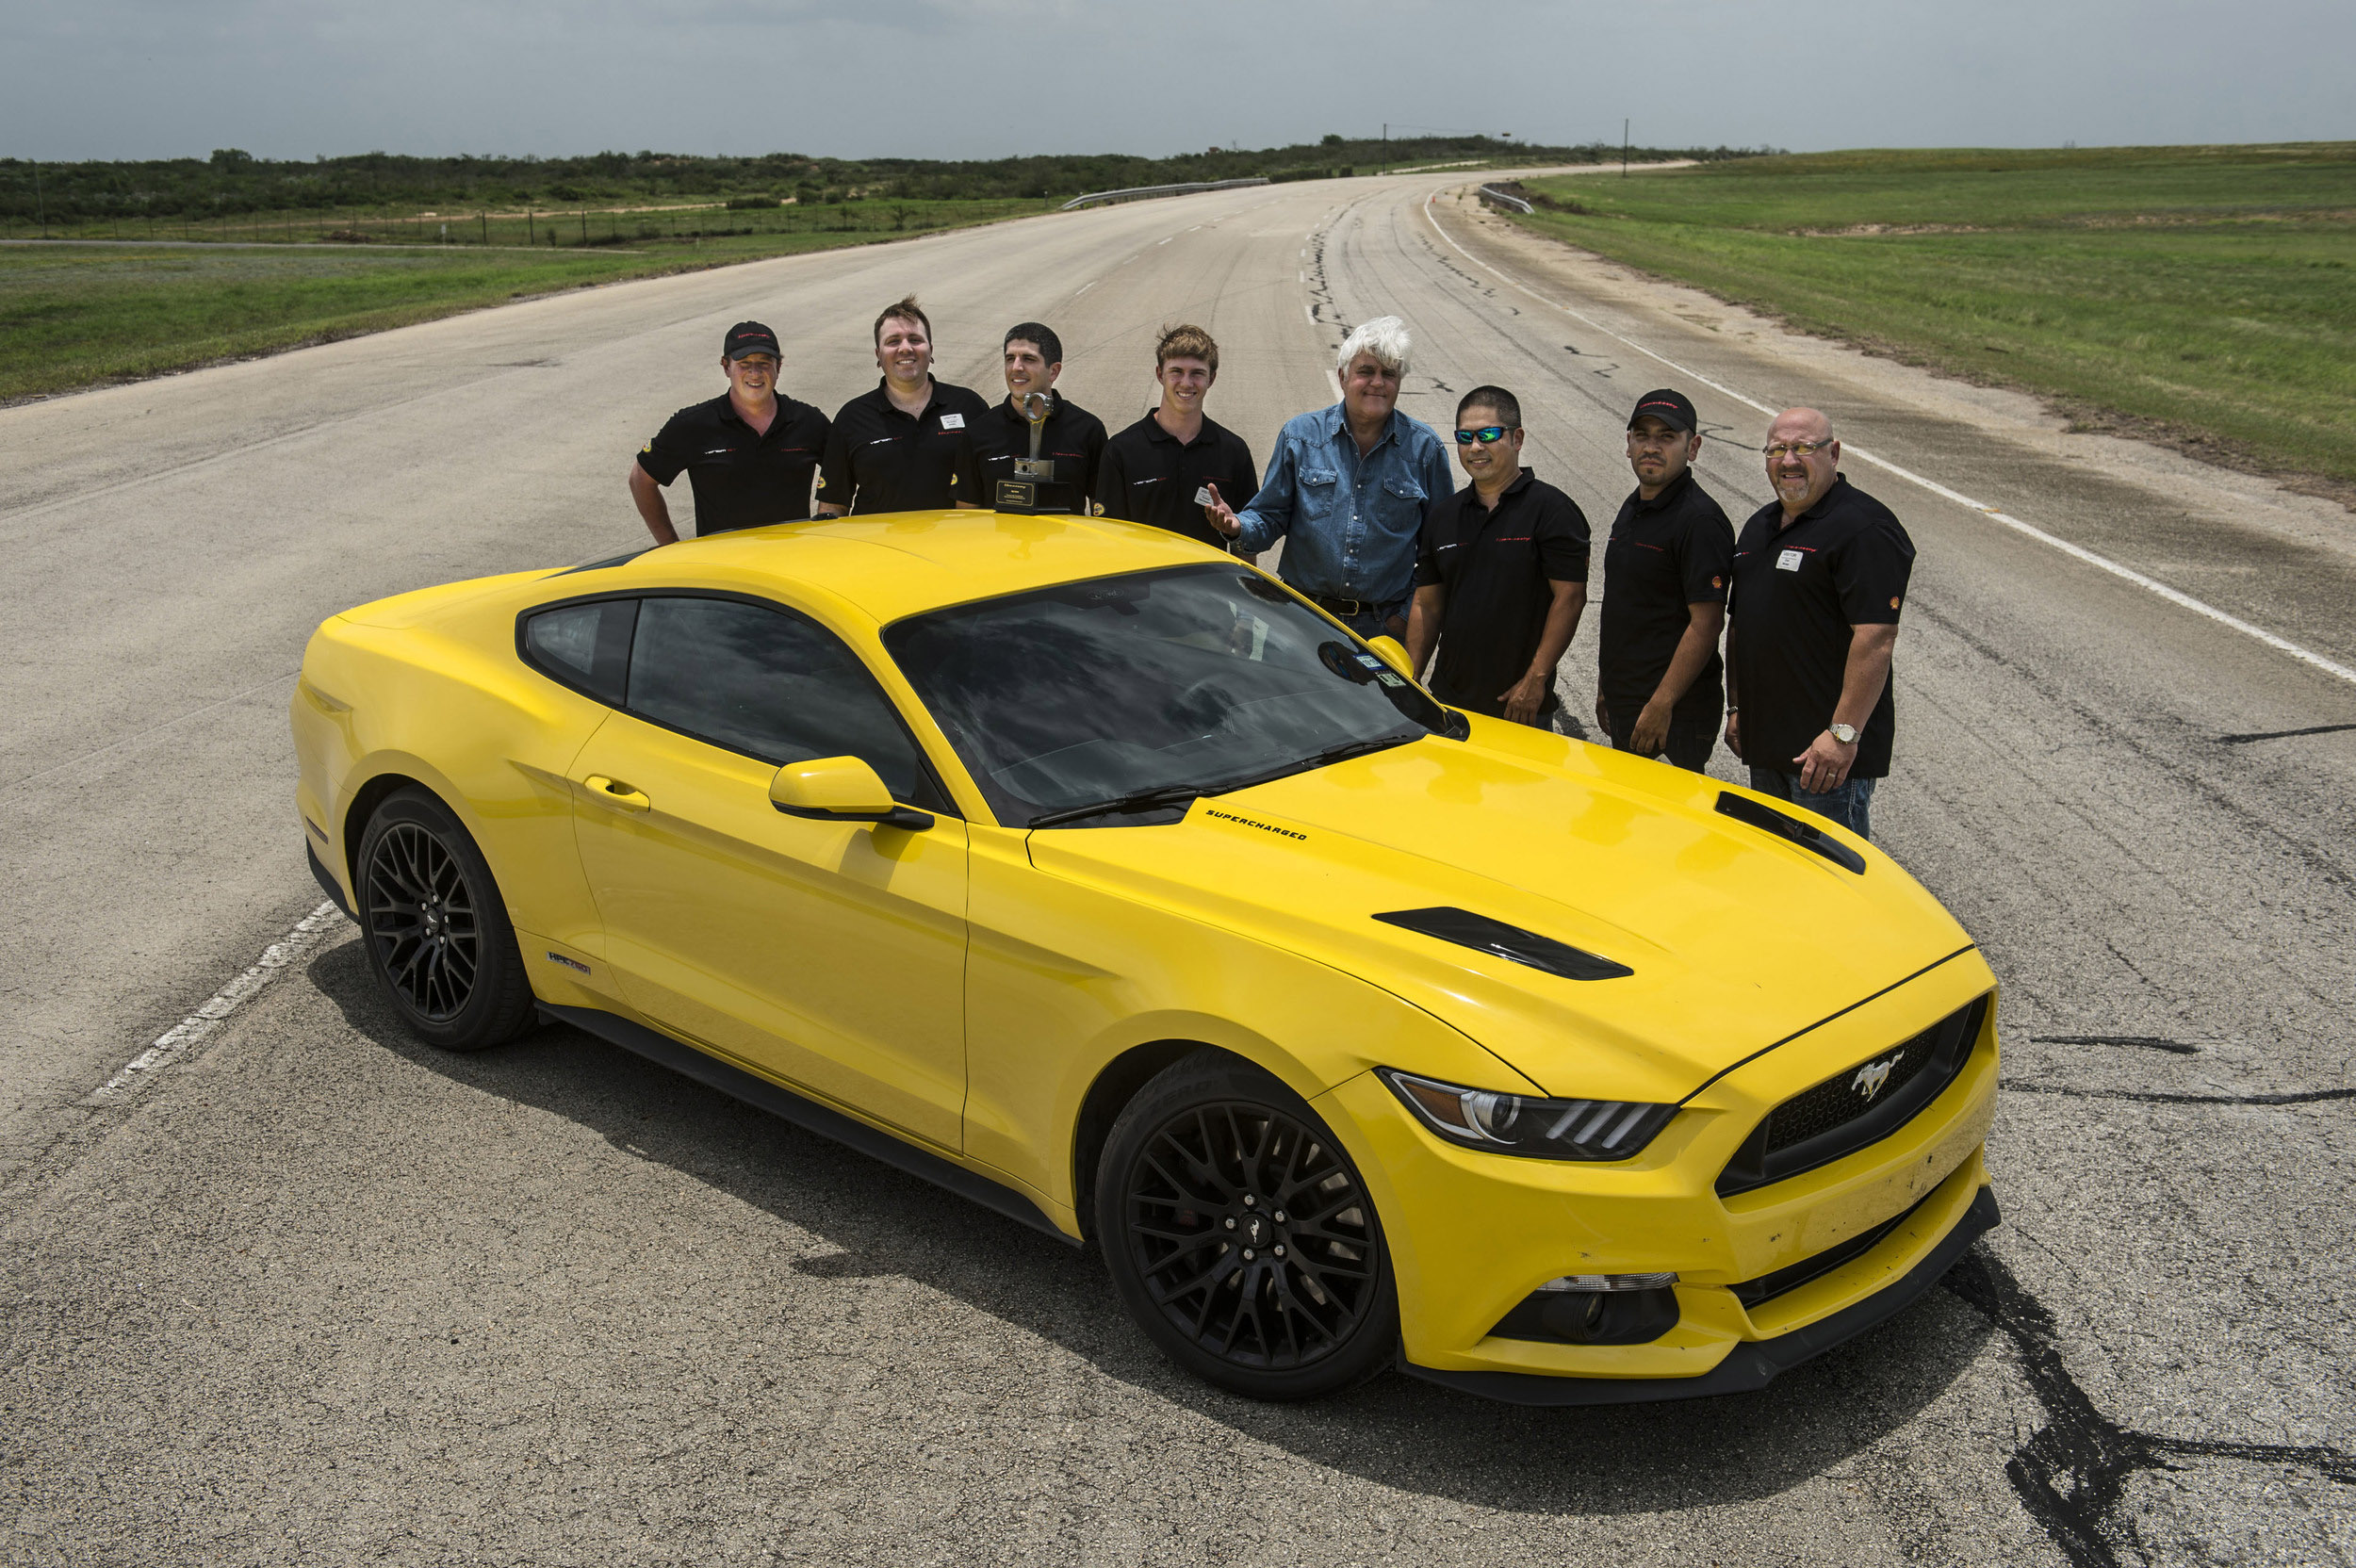 Image 30 Of 48 2018 Hennessey Mustang Gt Hpe700 Supercharged 1964 Ford Prior Design Bmw 6 Series Coupe Wide Body